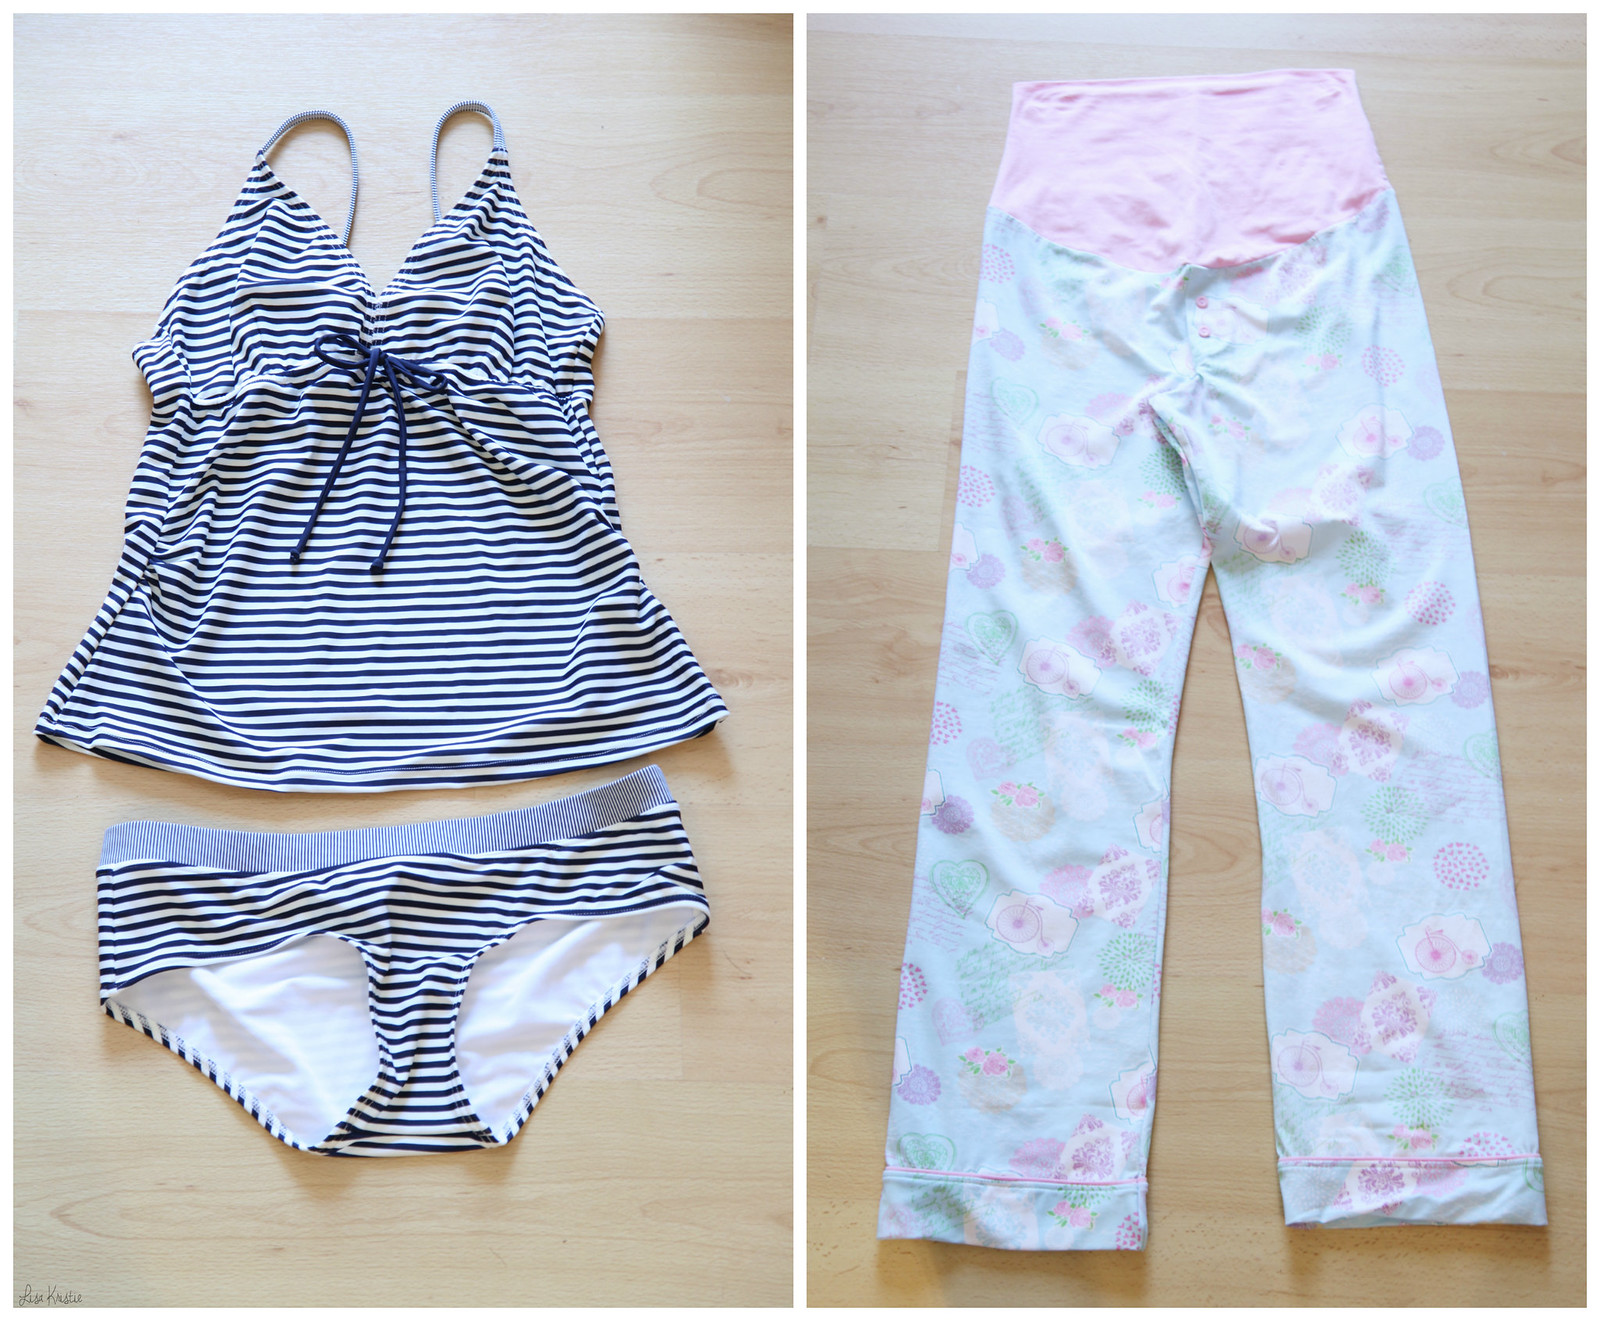 maternity clothes pregnancy shopping expectant expecting swimsuit two piece tankini nautical blue white stripes + pale pink blue floral pajamas pjs pyjamas belly band stretchy comfortable nightwear